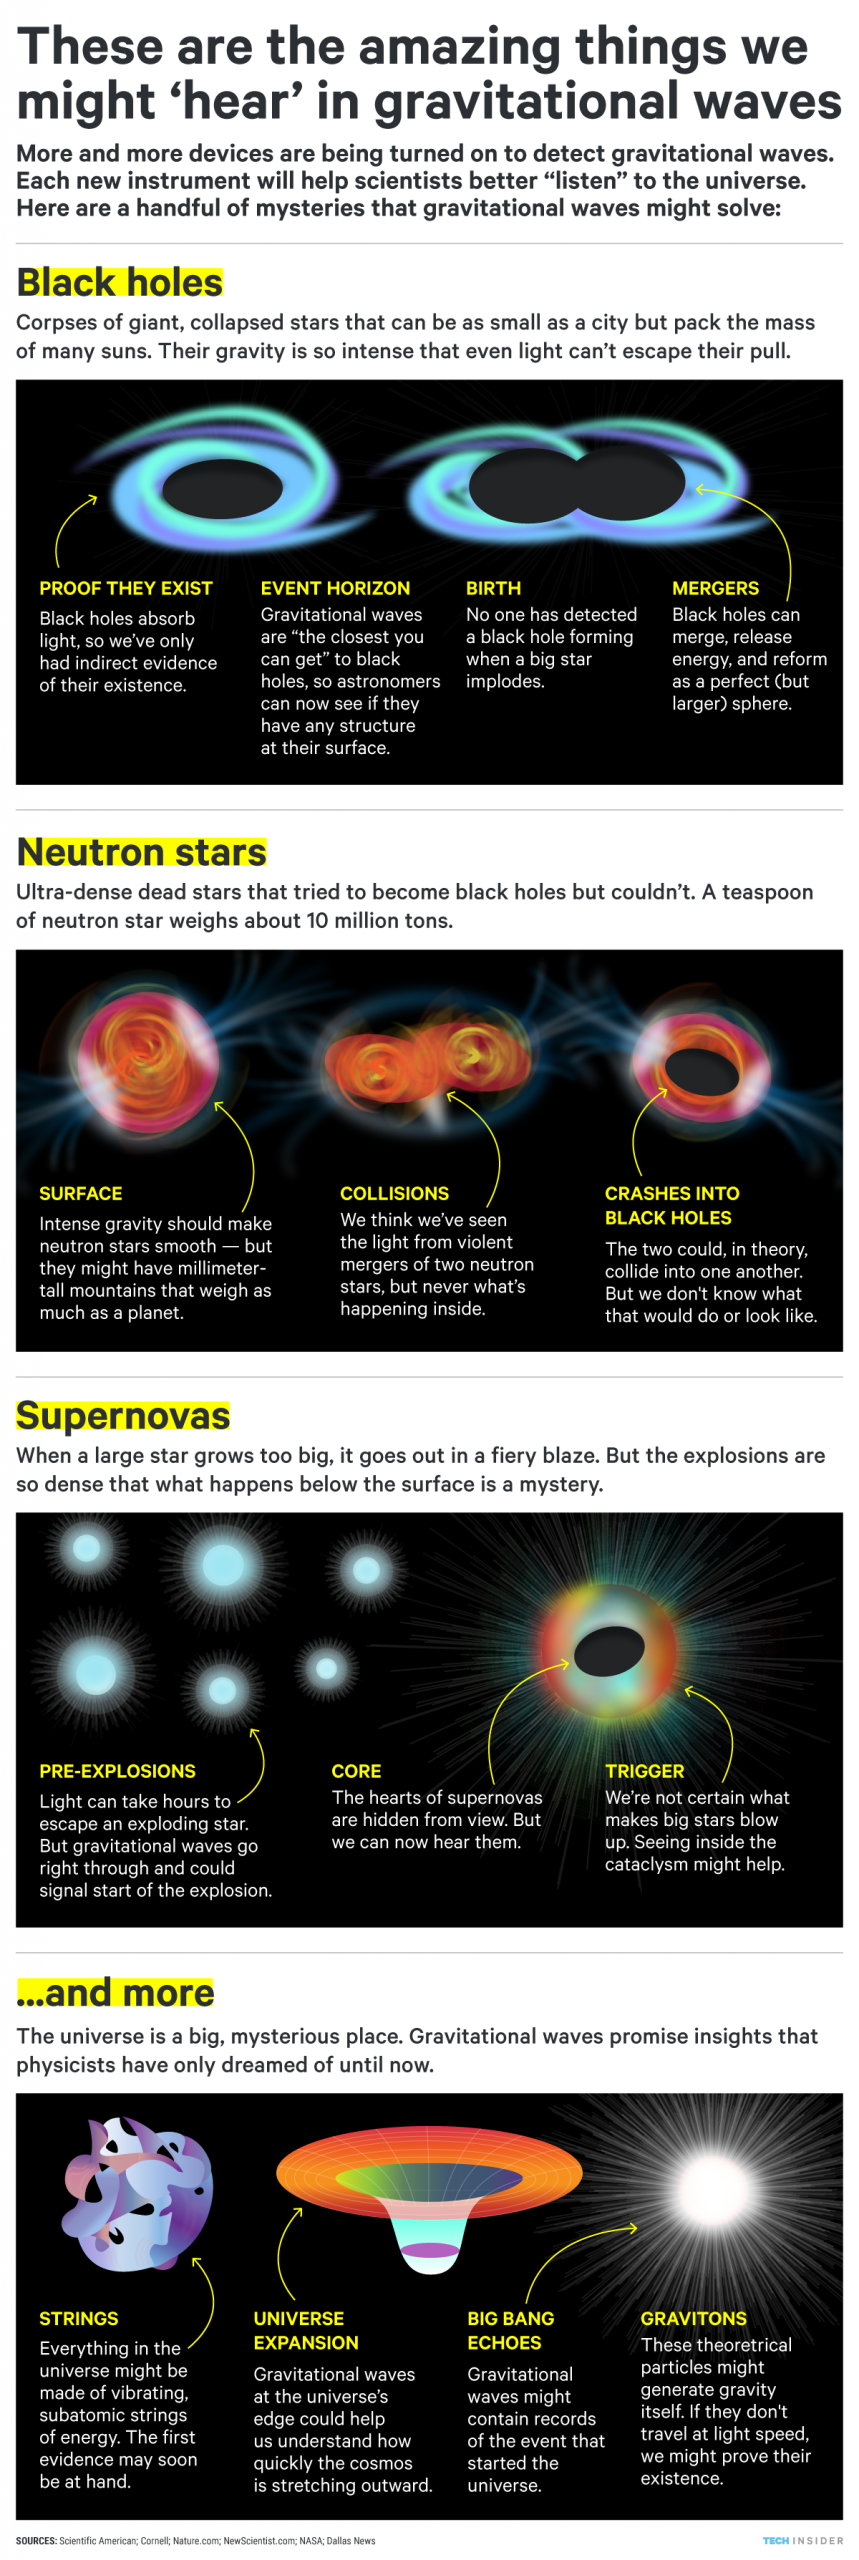 a huge advance in physics could help solve these mysteries of the a huge advance in physics could help solve these mysteries of the universe